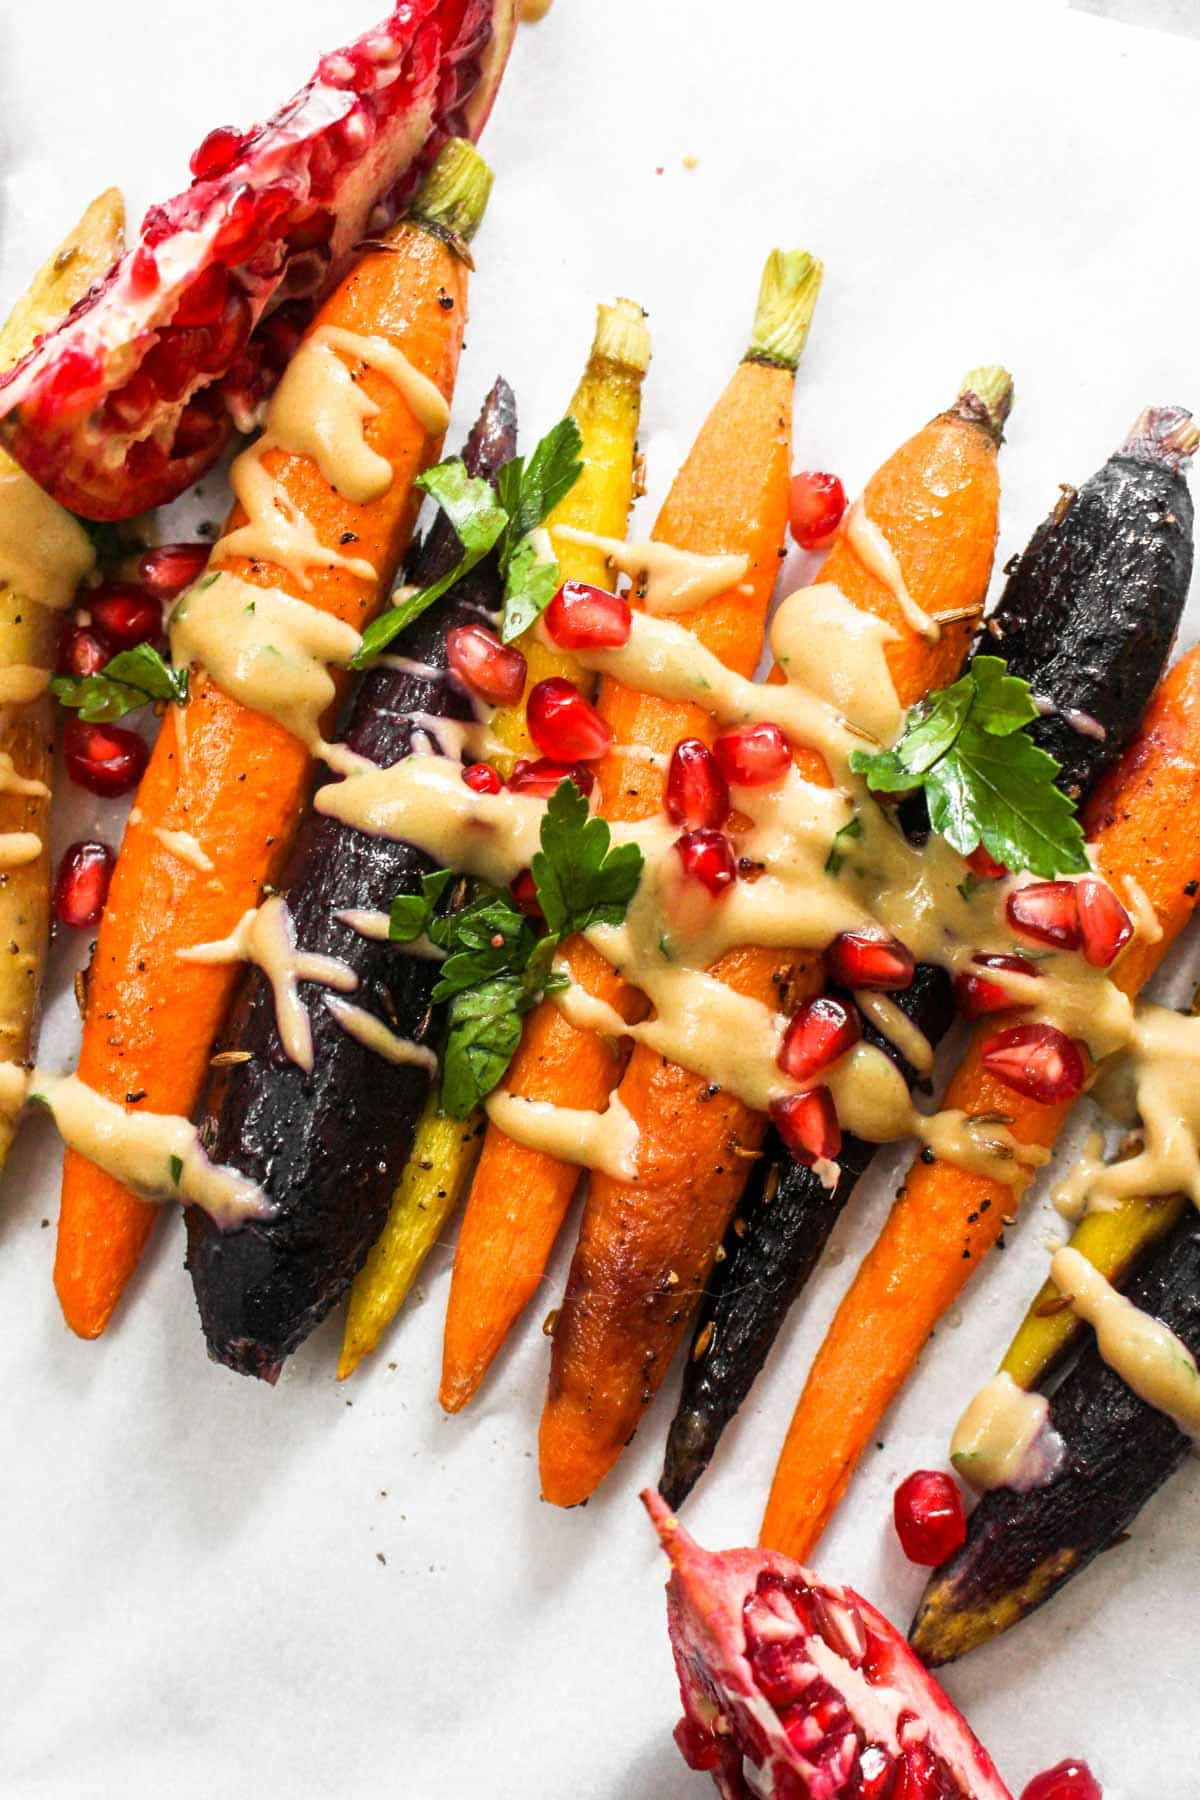 This 7 ingredient  Whole Roasted Carrots with Maple Tahini recipe is easy to make but boasts BIG flavors. This light side dish is paleo and vegan! | CatchingSeeds.com